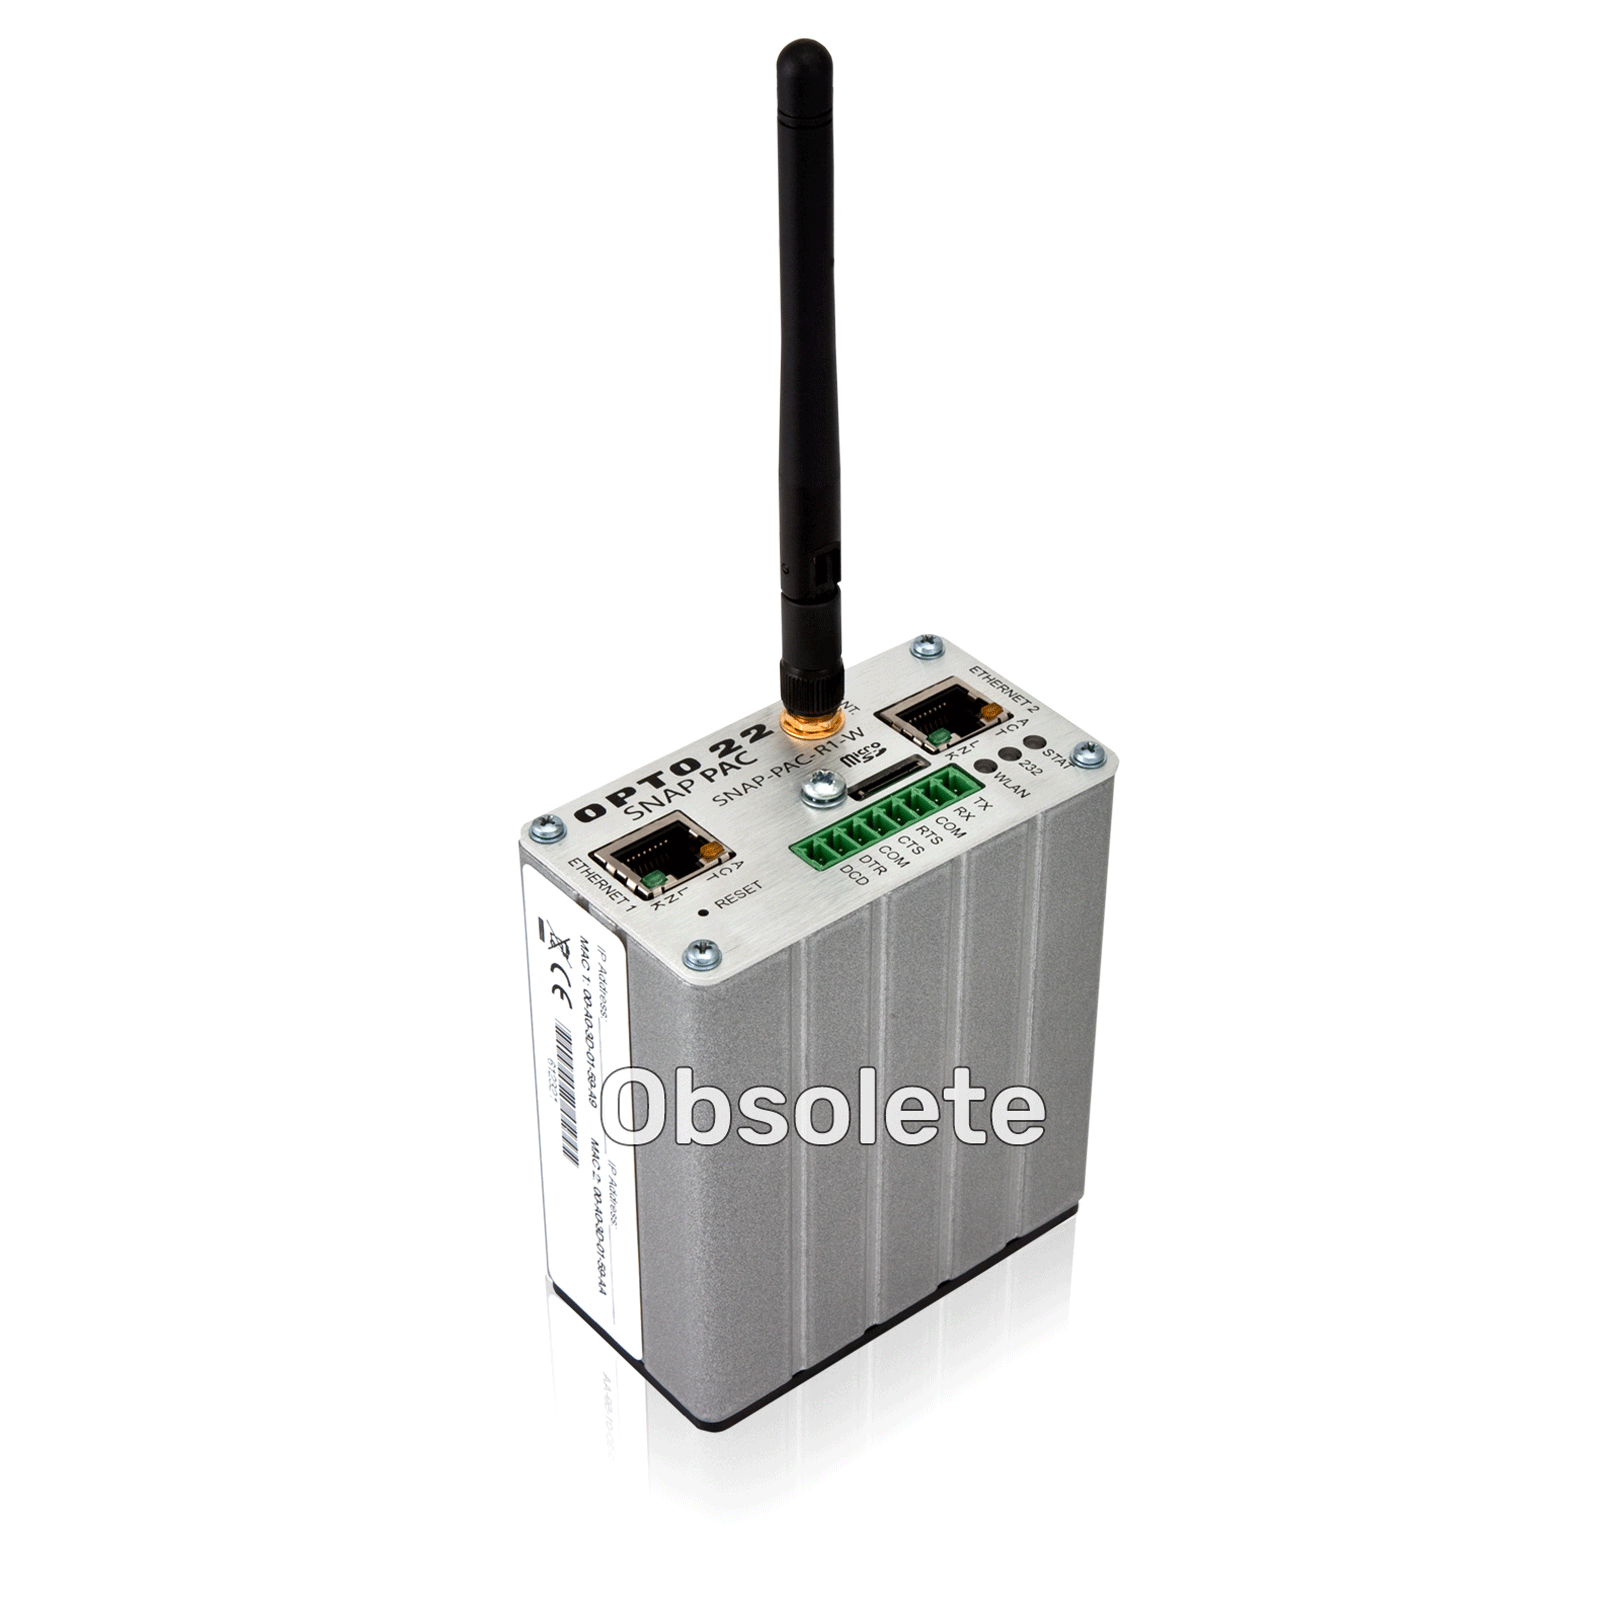 Opto22 Snap Pac R1 W Obsolete Wired Wireless R Series Connector Diagrams Rj Rs Cd Changers Gsm Phone Car Http Image Pinout Previous